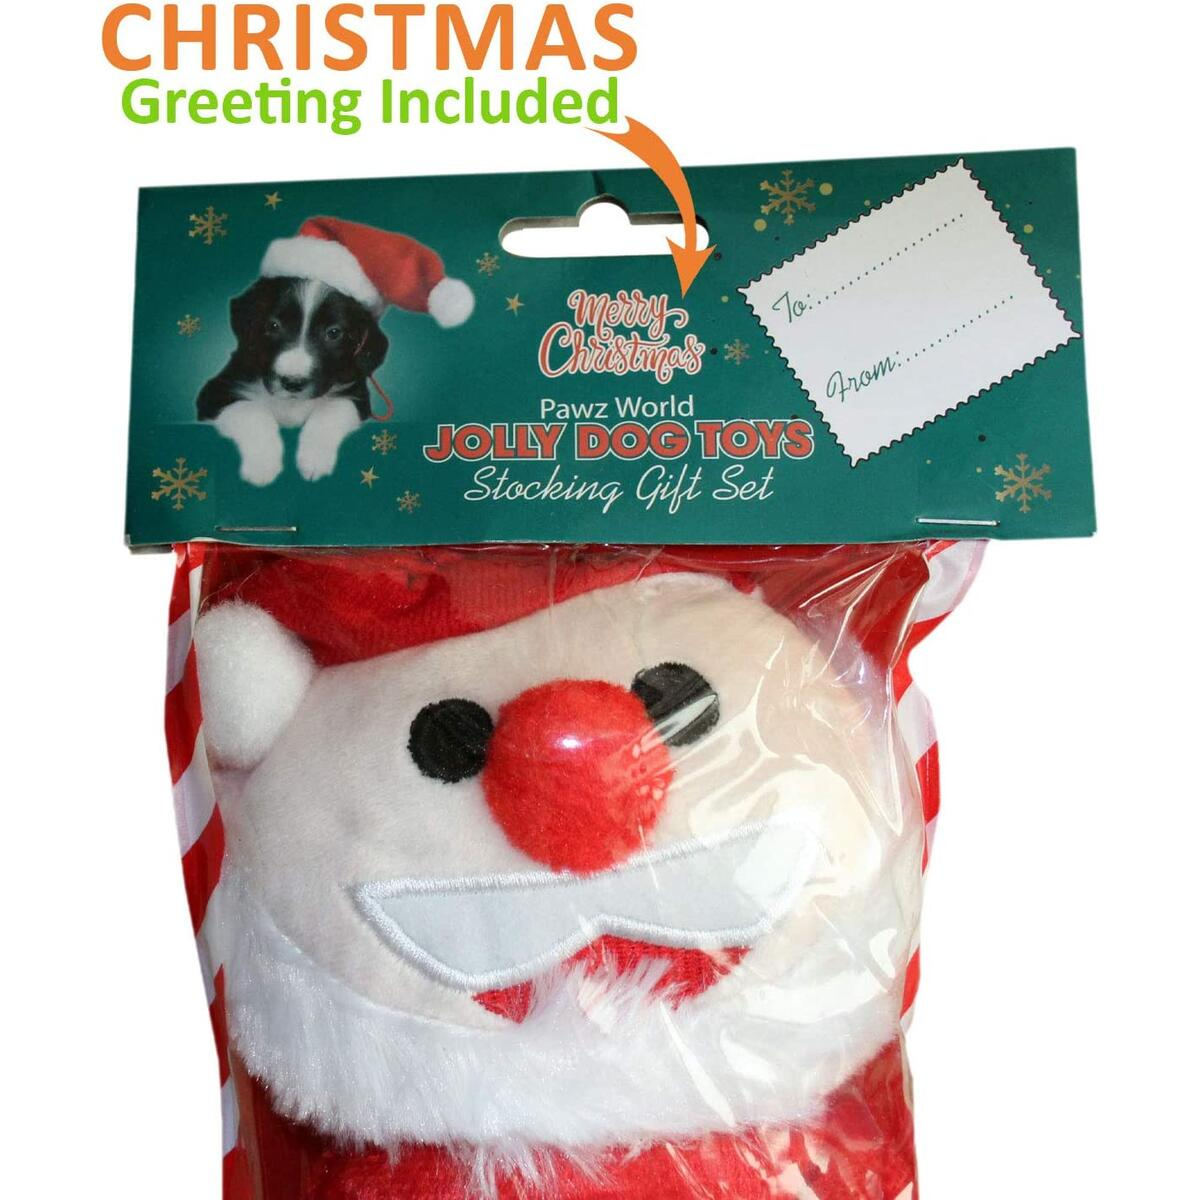 Dog and Stocking Stuffers - Great Presents for Small Dogs.